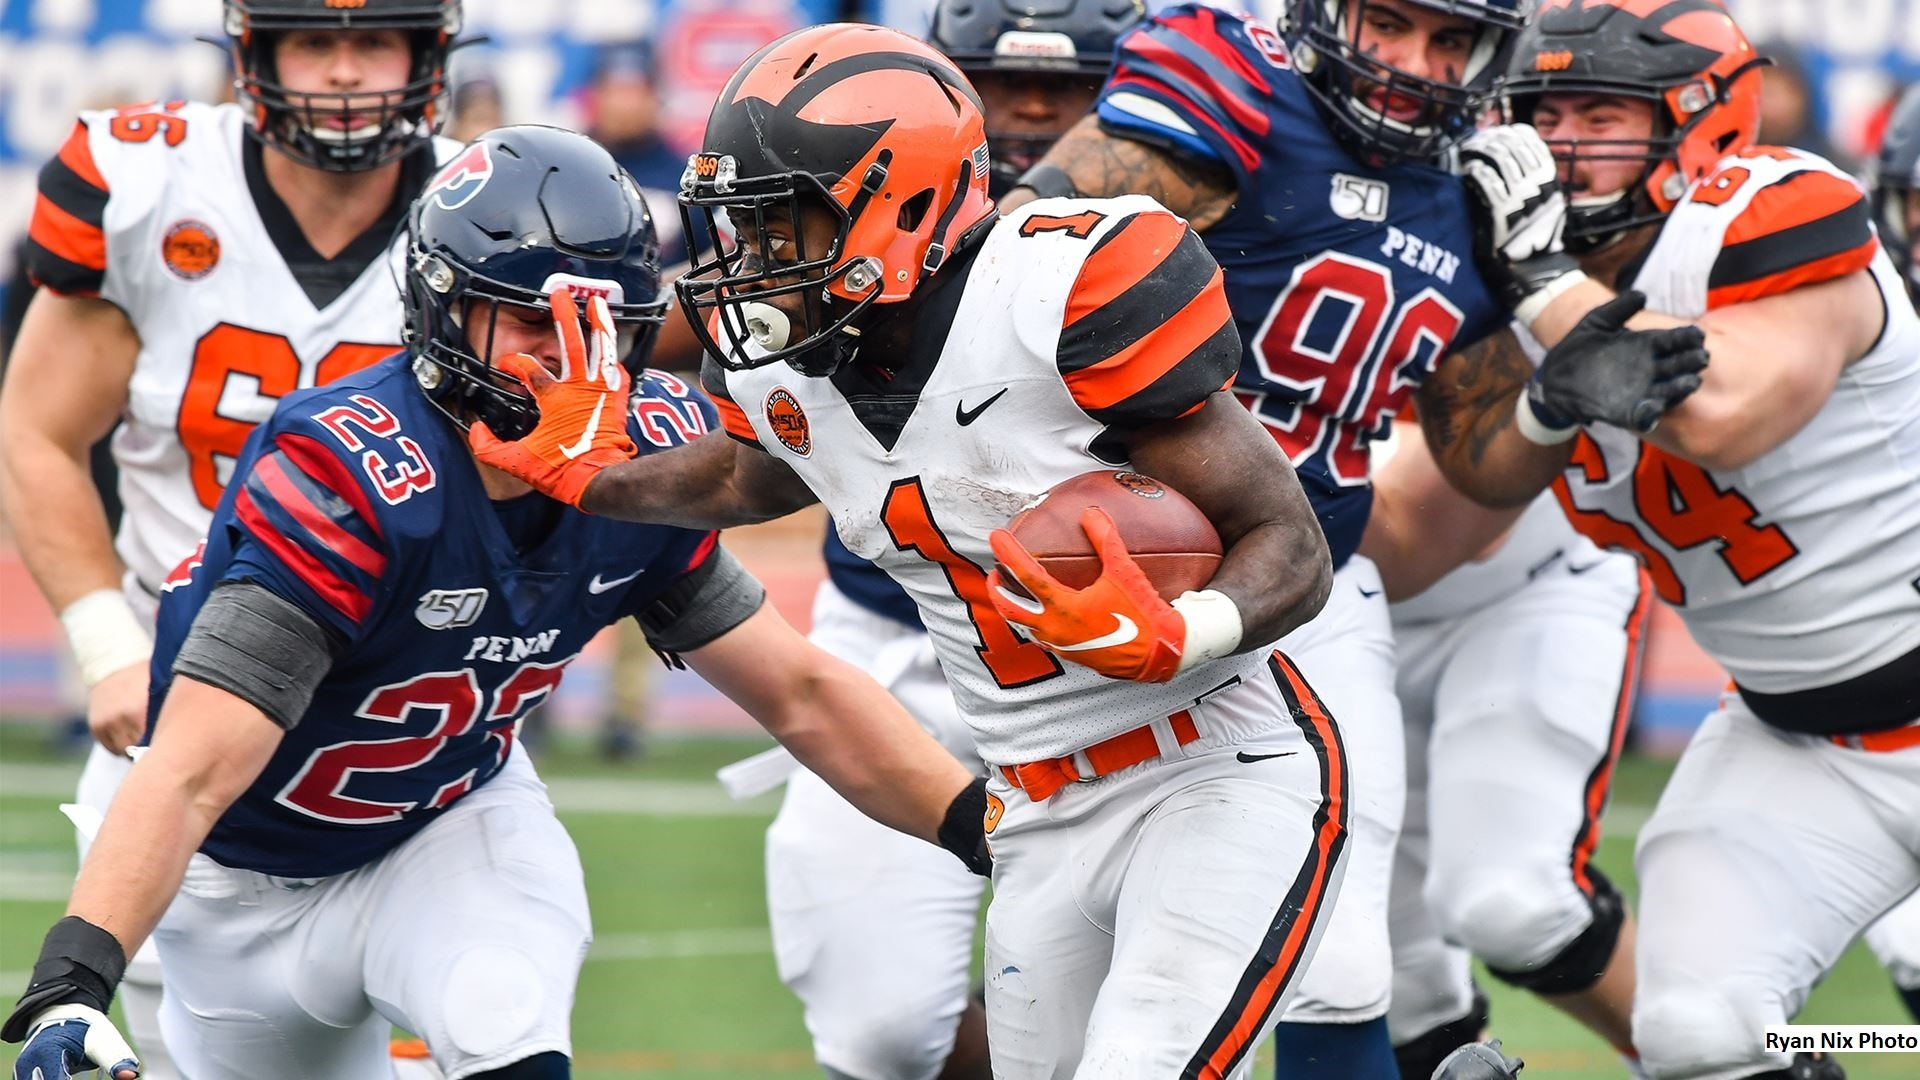 After 665 Days Off, Ivy League Football Set for Return